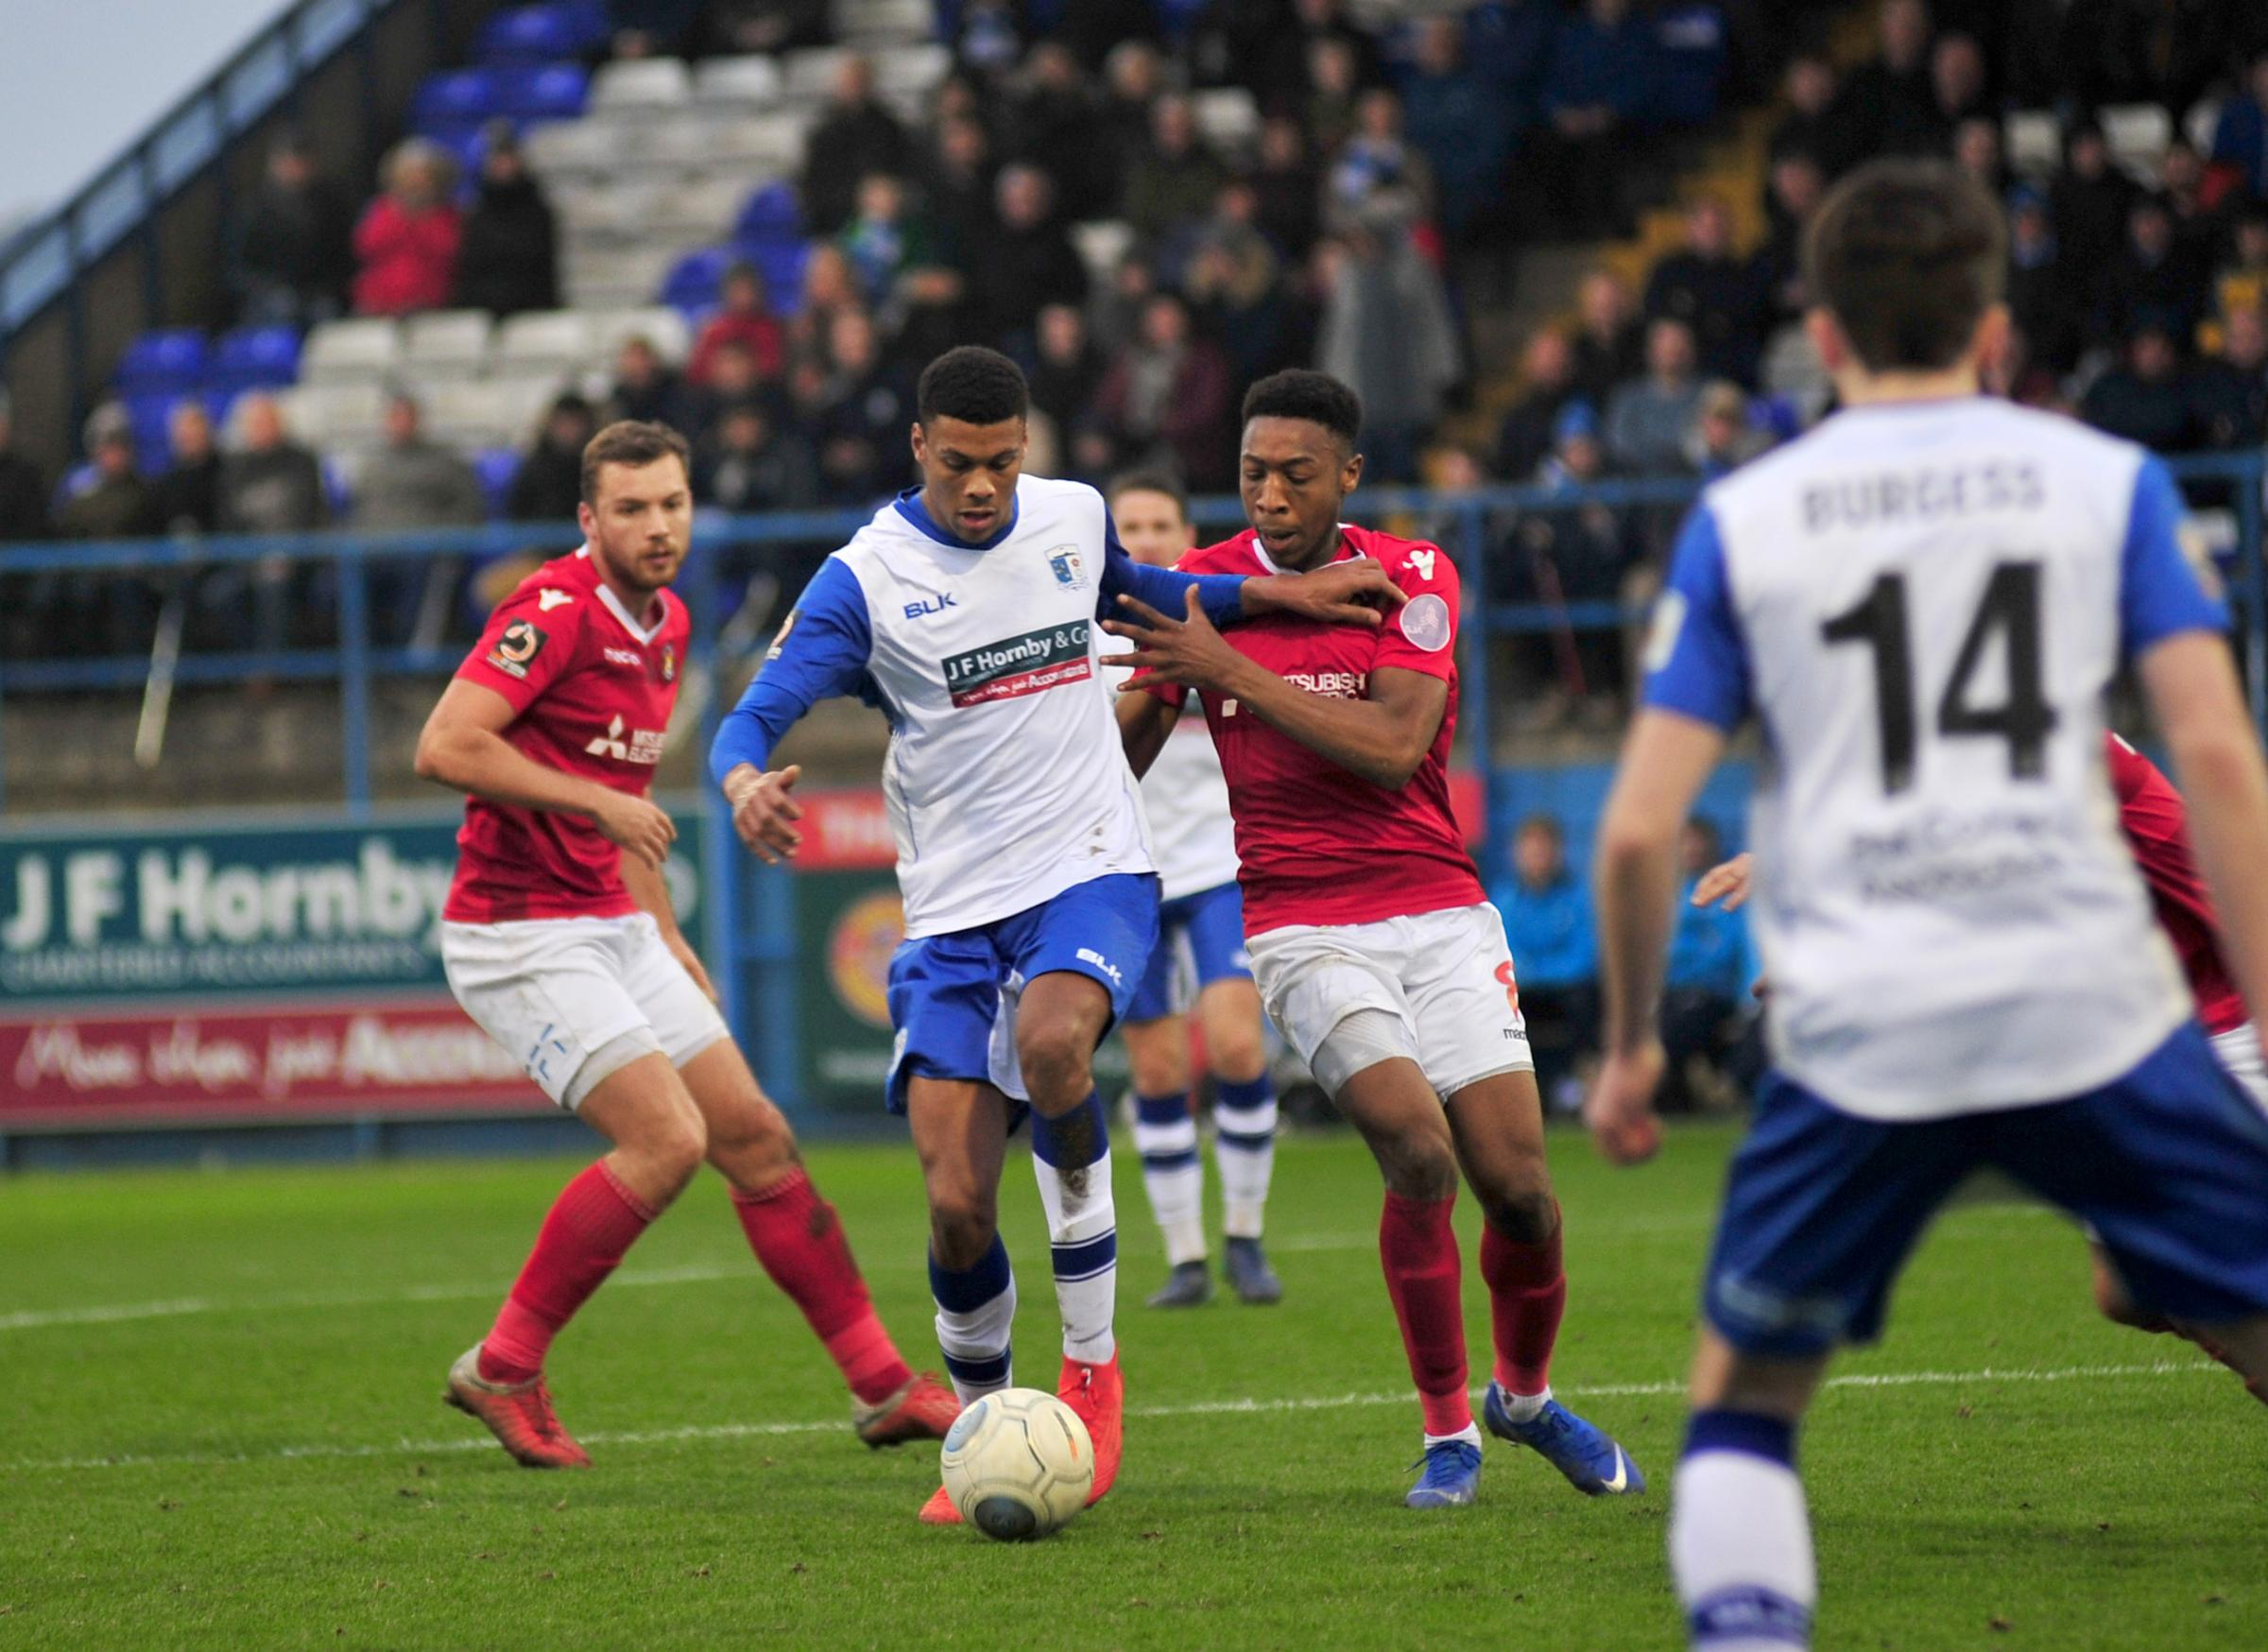 Kyle Jameson for Barrow A.F.C in their game against Ebbsfleet United